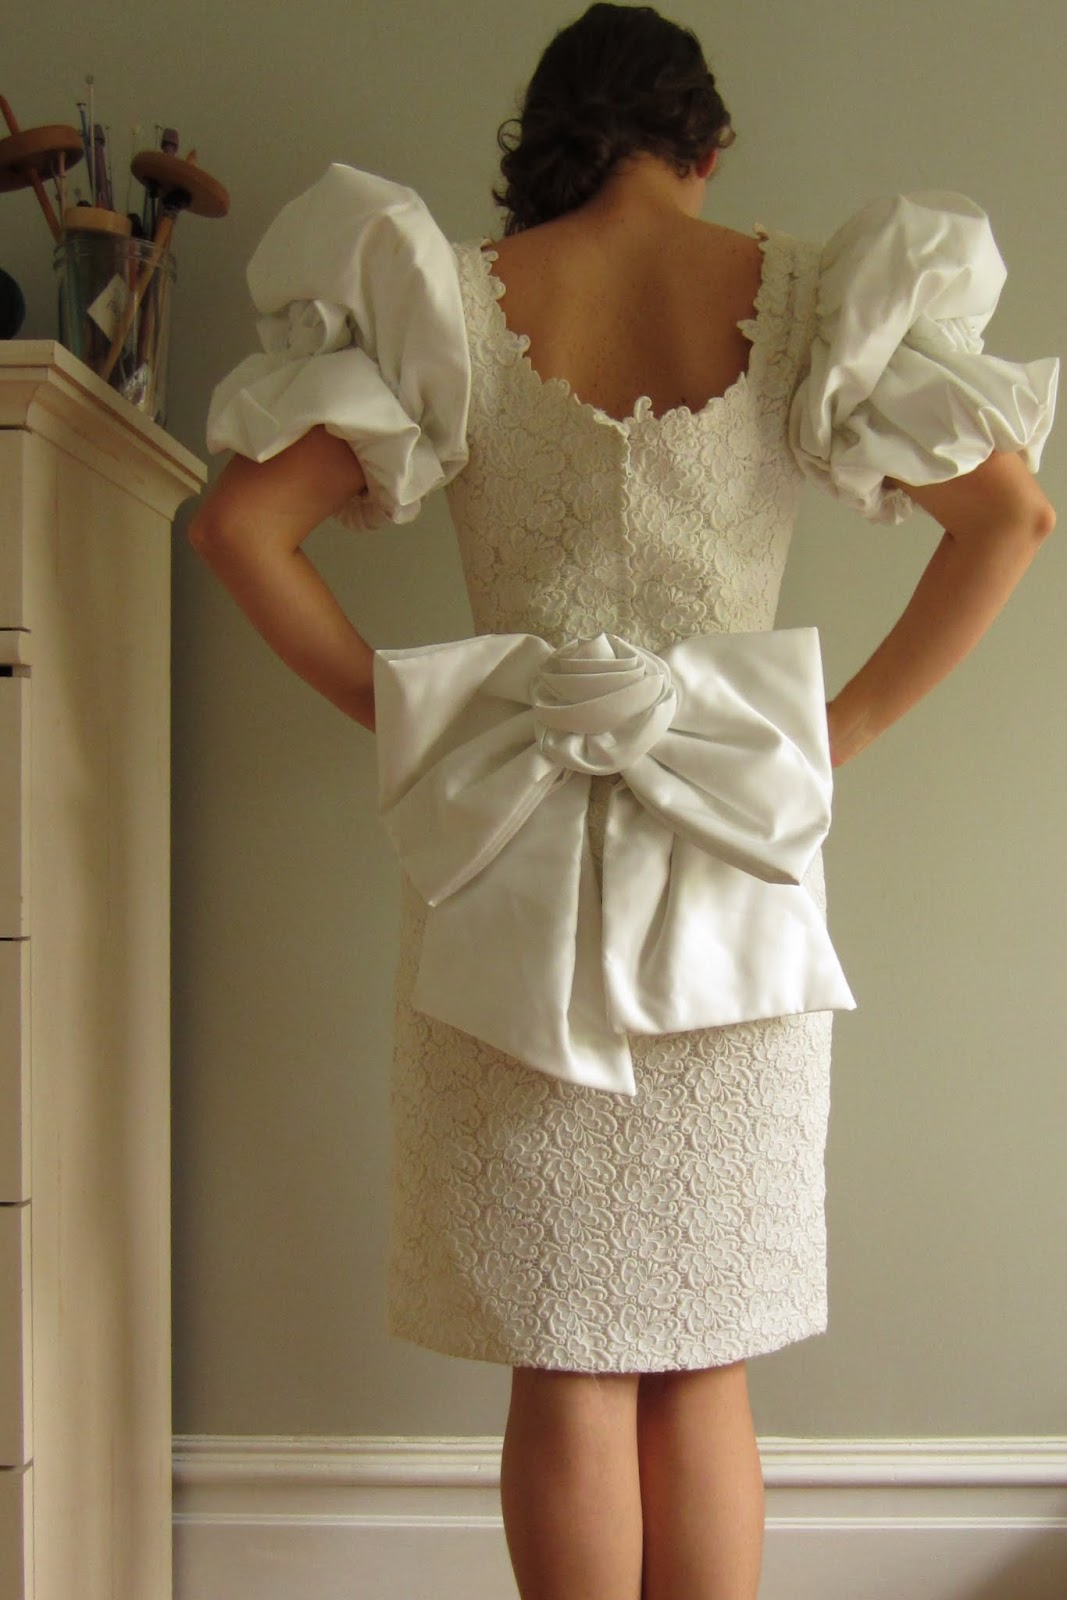 Wedding dress thrift store efficient for Donate wedding dress goodwill